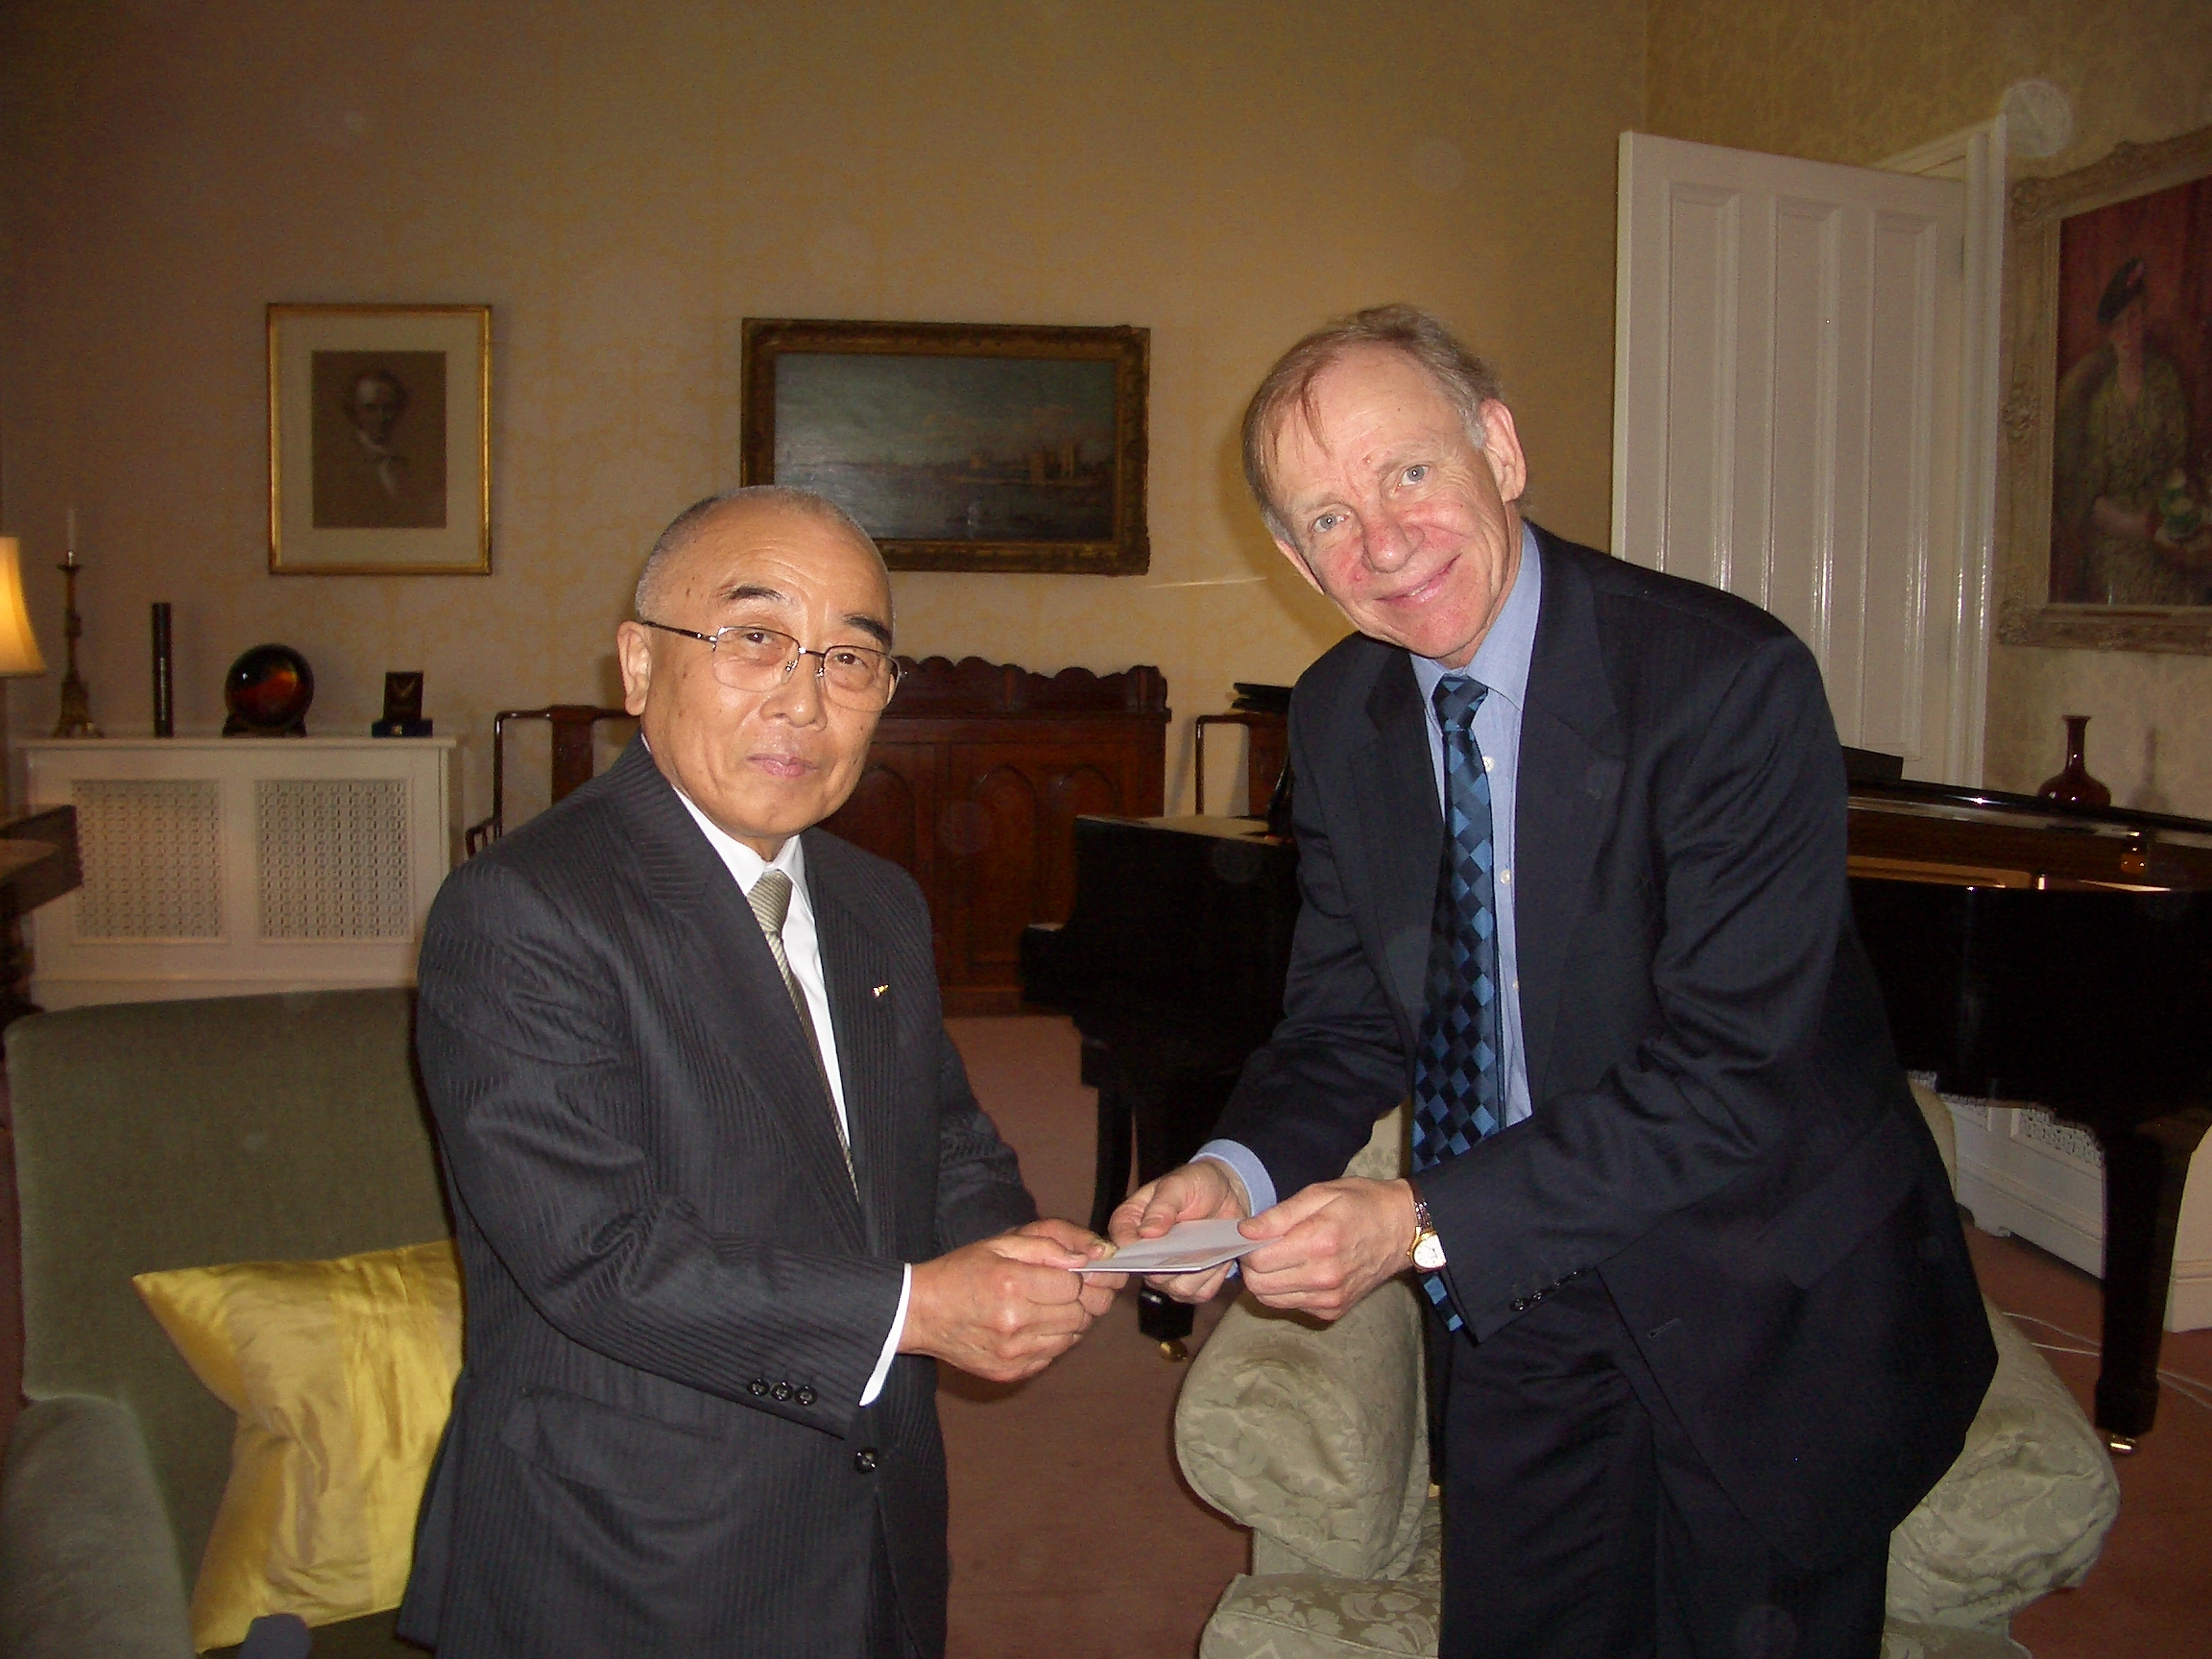 Revd Toshihide Numata at Balliol in 2006, with Andrew Graham, Master